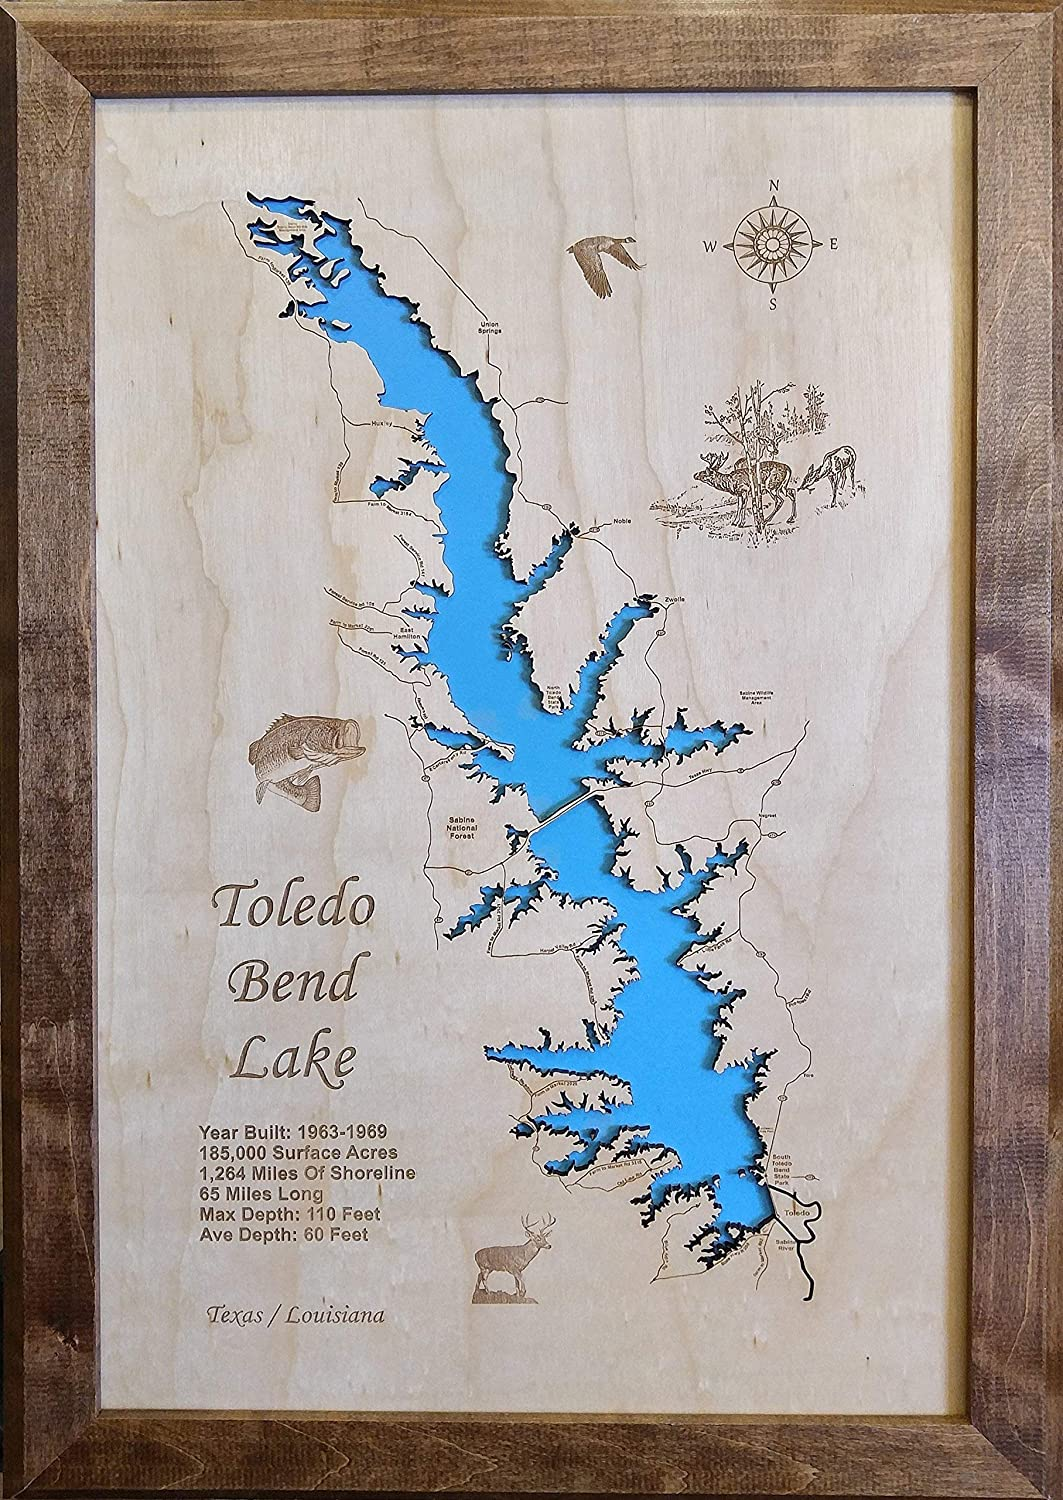 map of toledo bend lake Amazon Com Toledo Bend Lake In Texas And Louisiana Framed Wood map of toledo bend lake